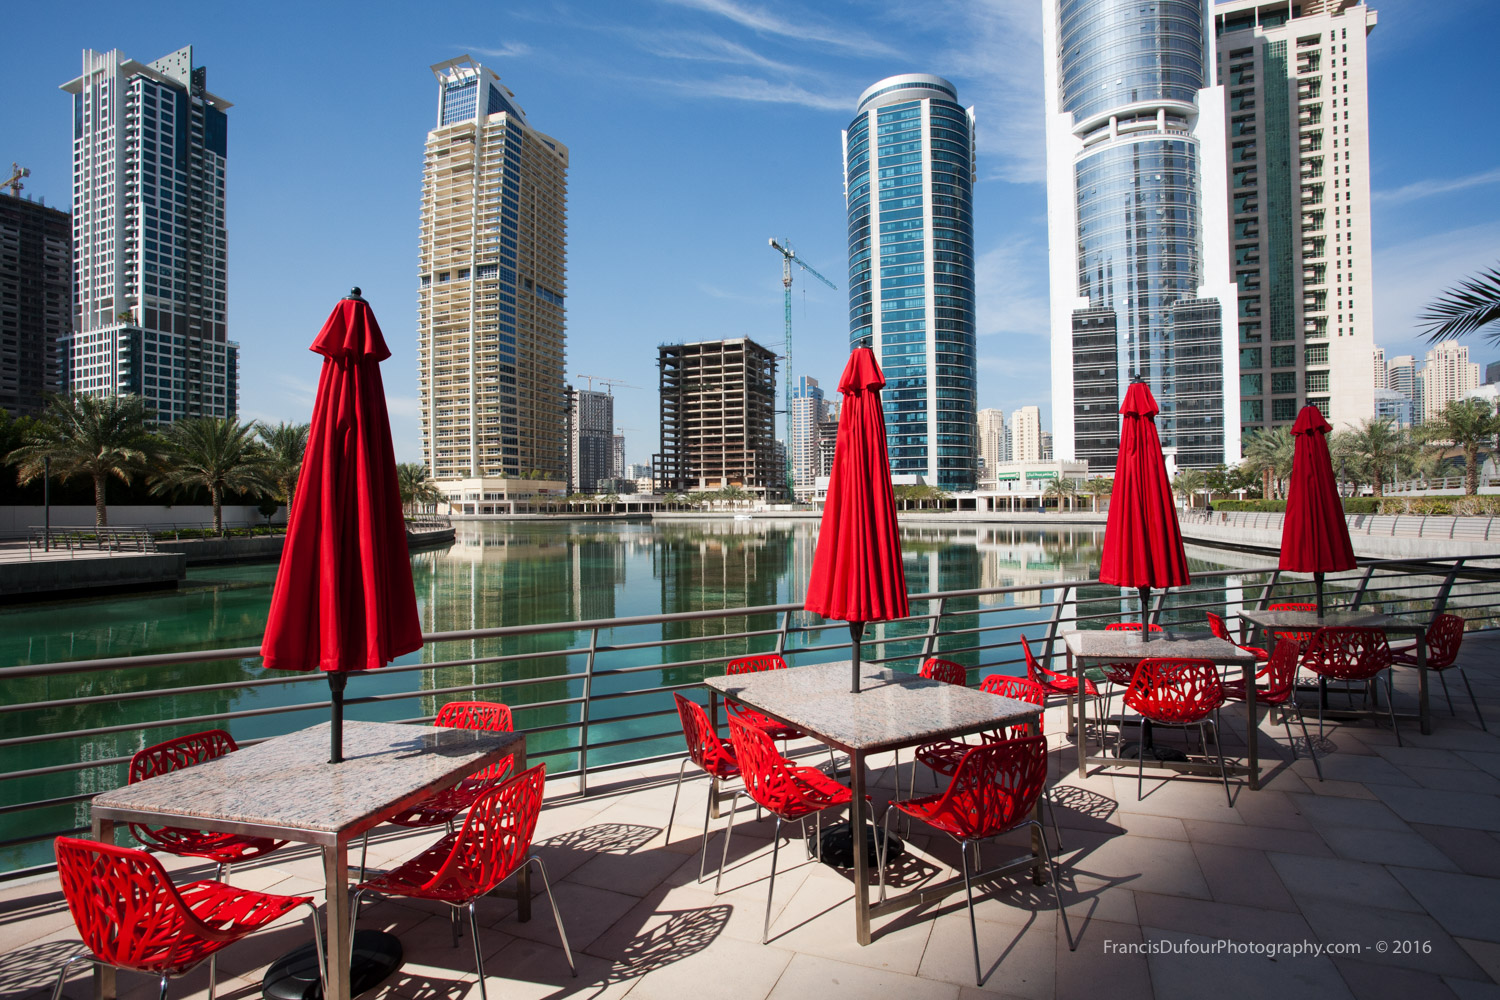 Red chairs and umbrellas in JLT (Dubai, UAE)